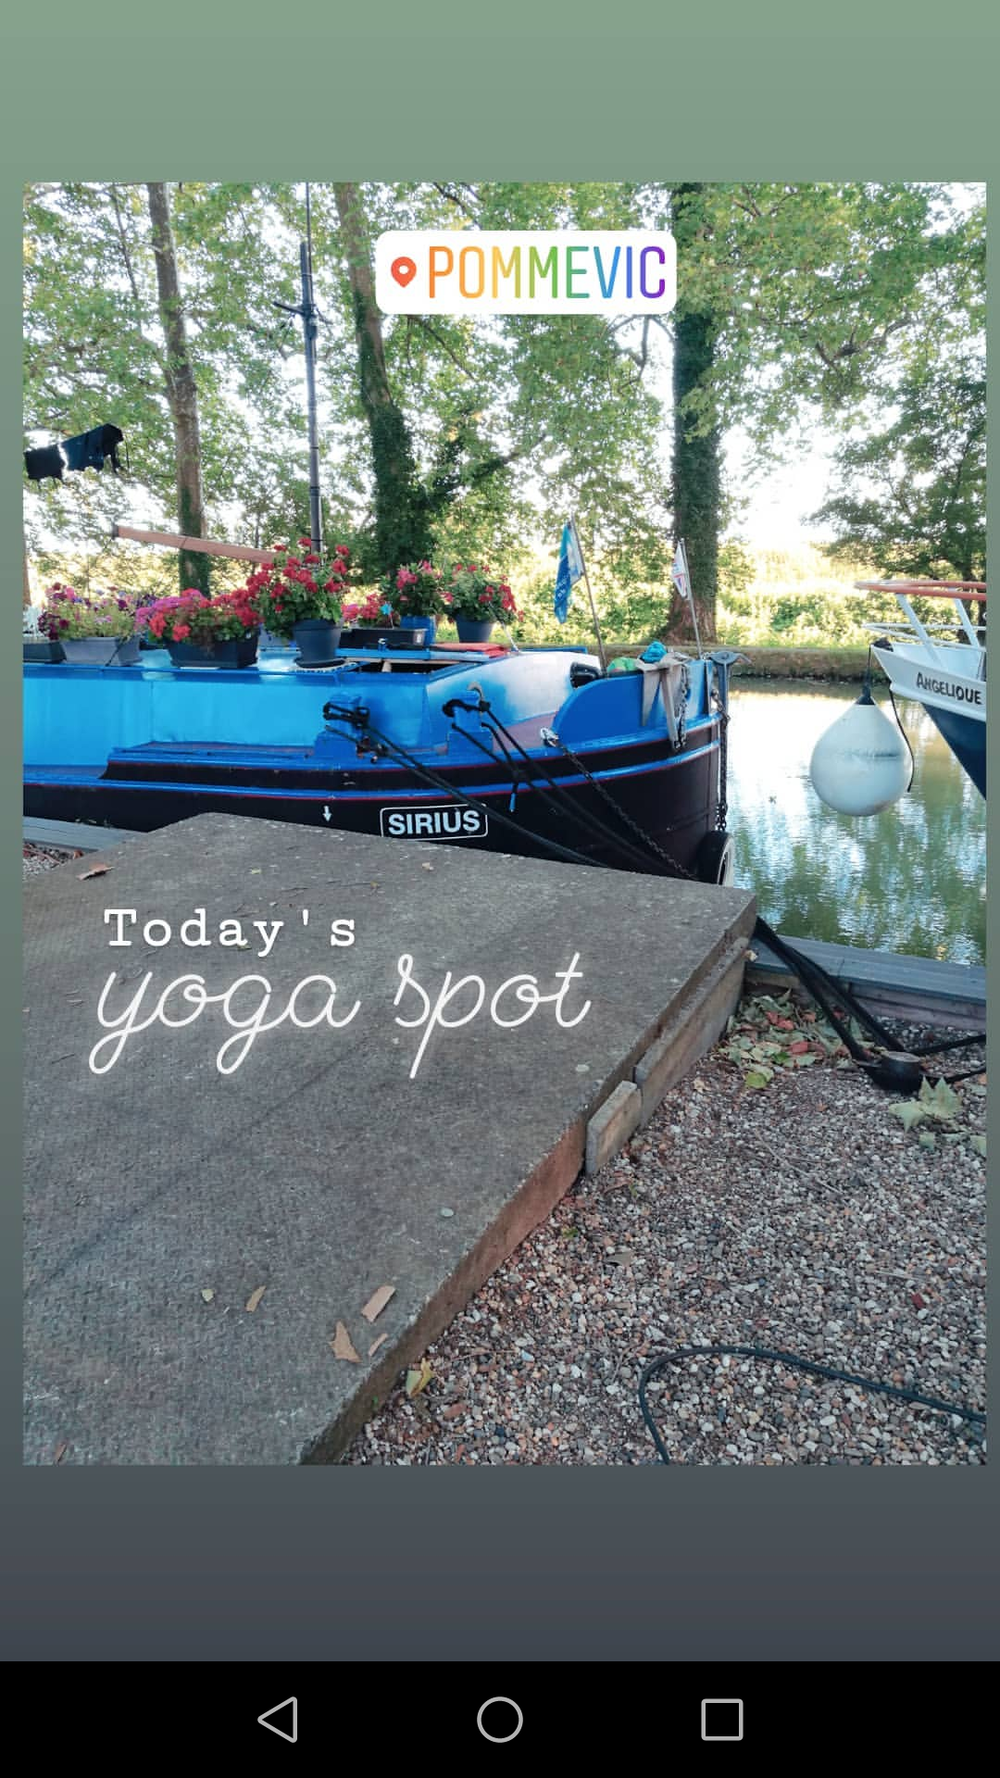 Finding creative yoga spots